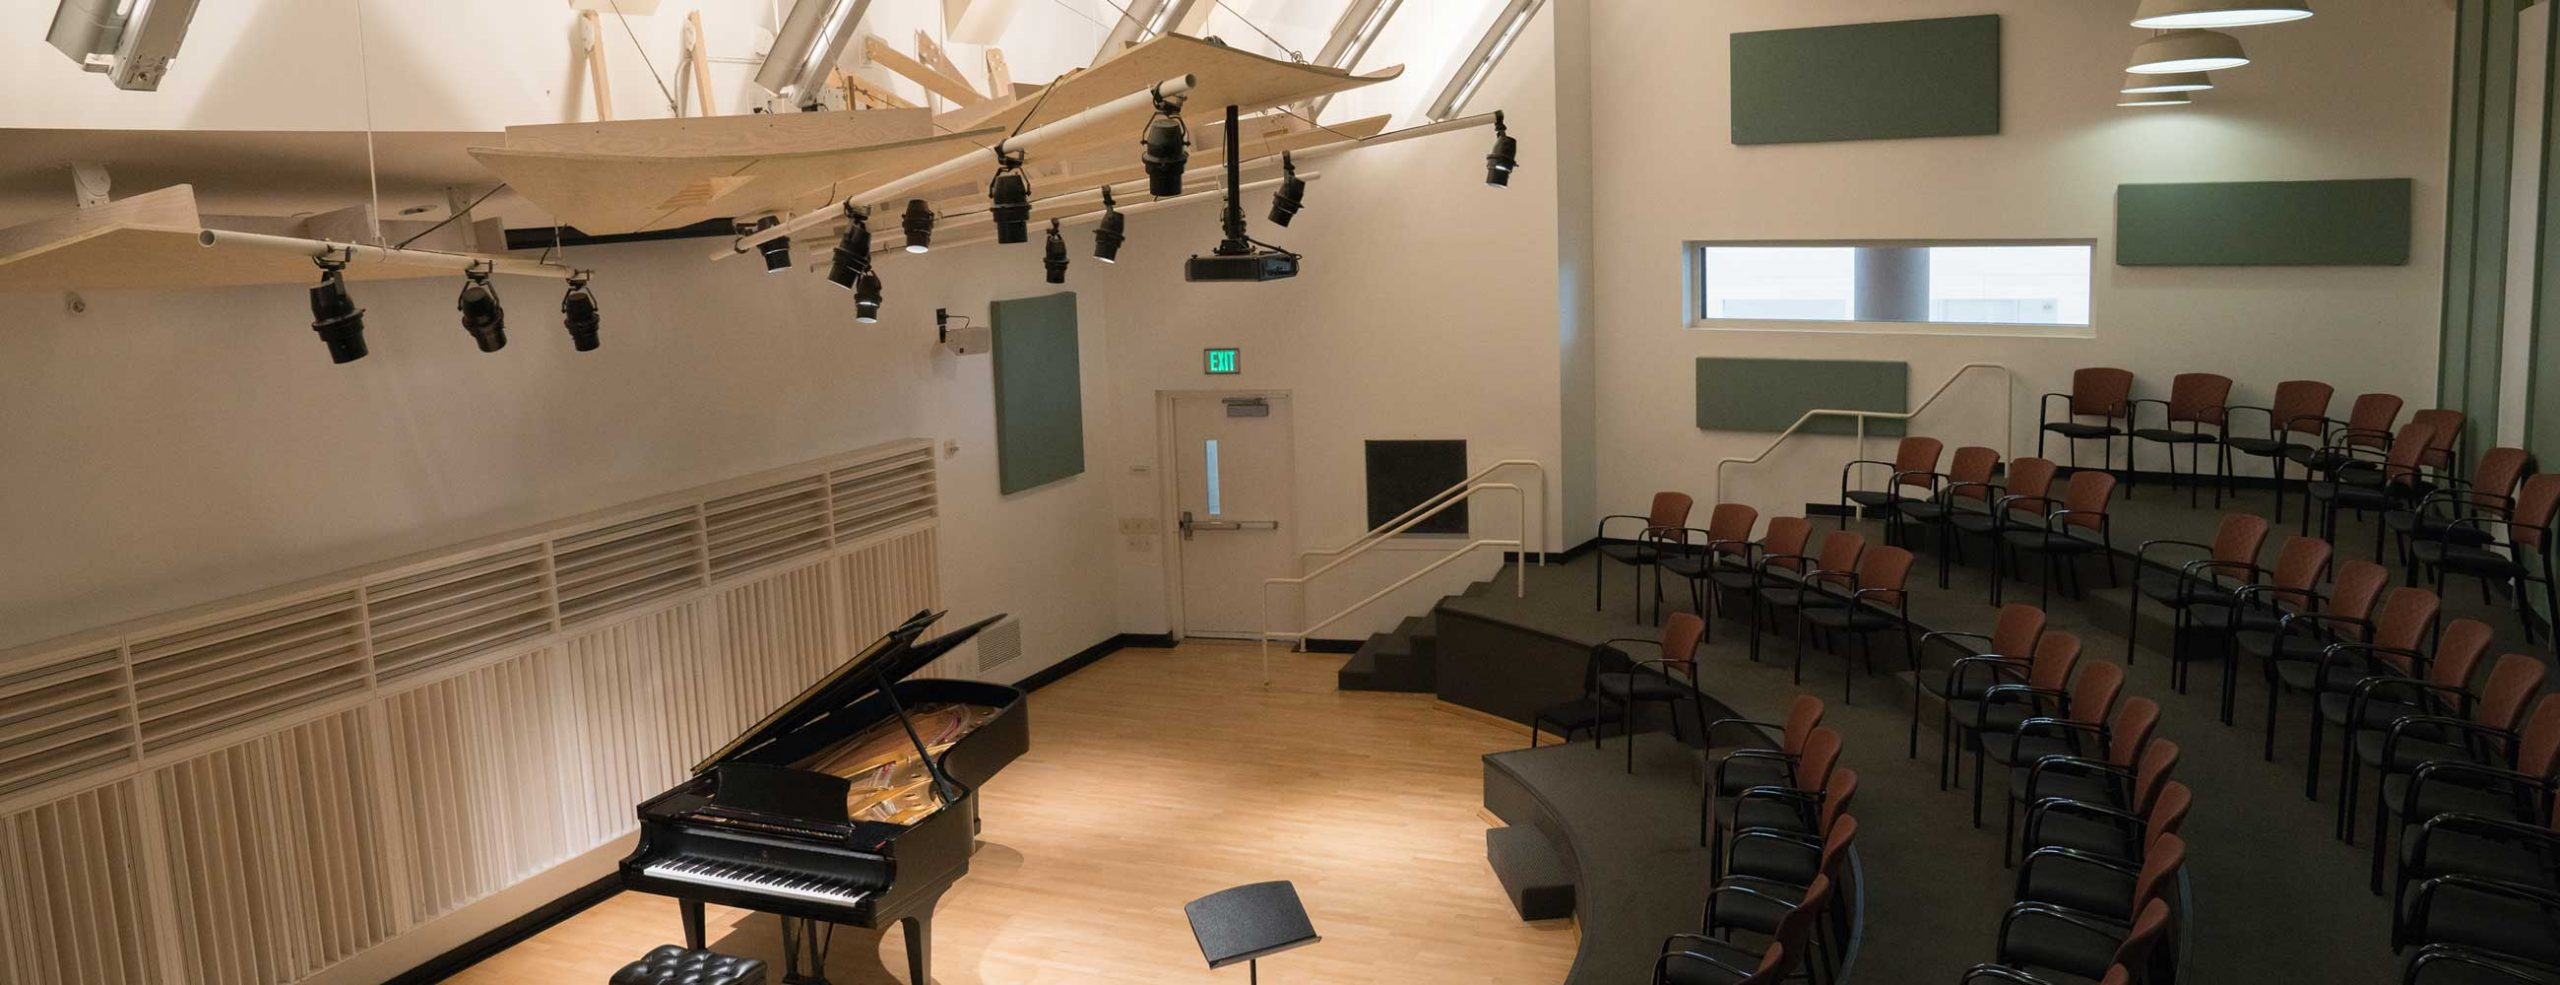 Overhead view of Mayman Hall with piano and empty lecture seats